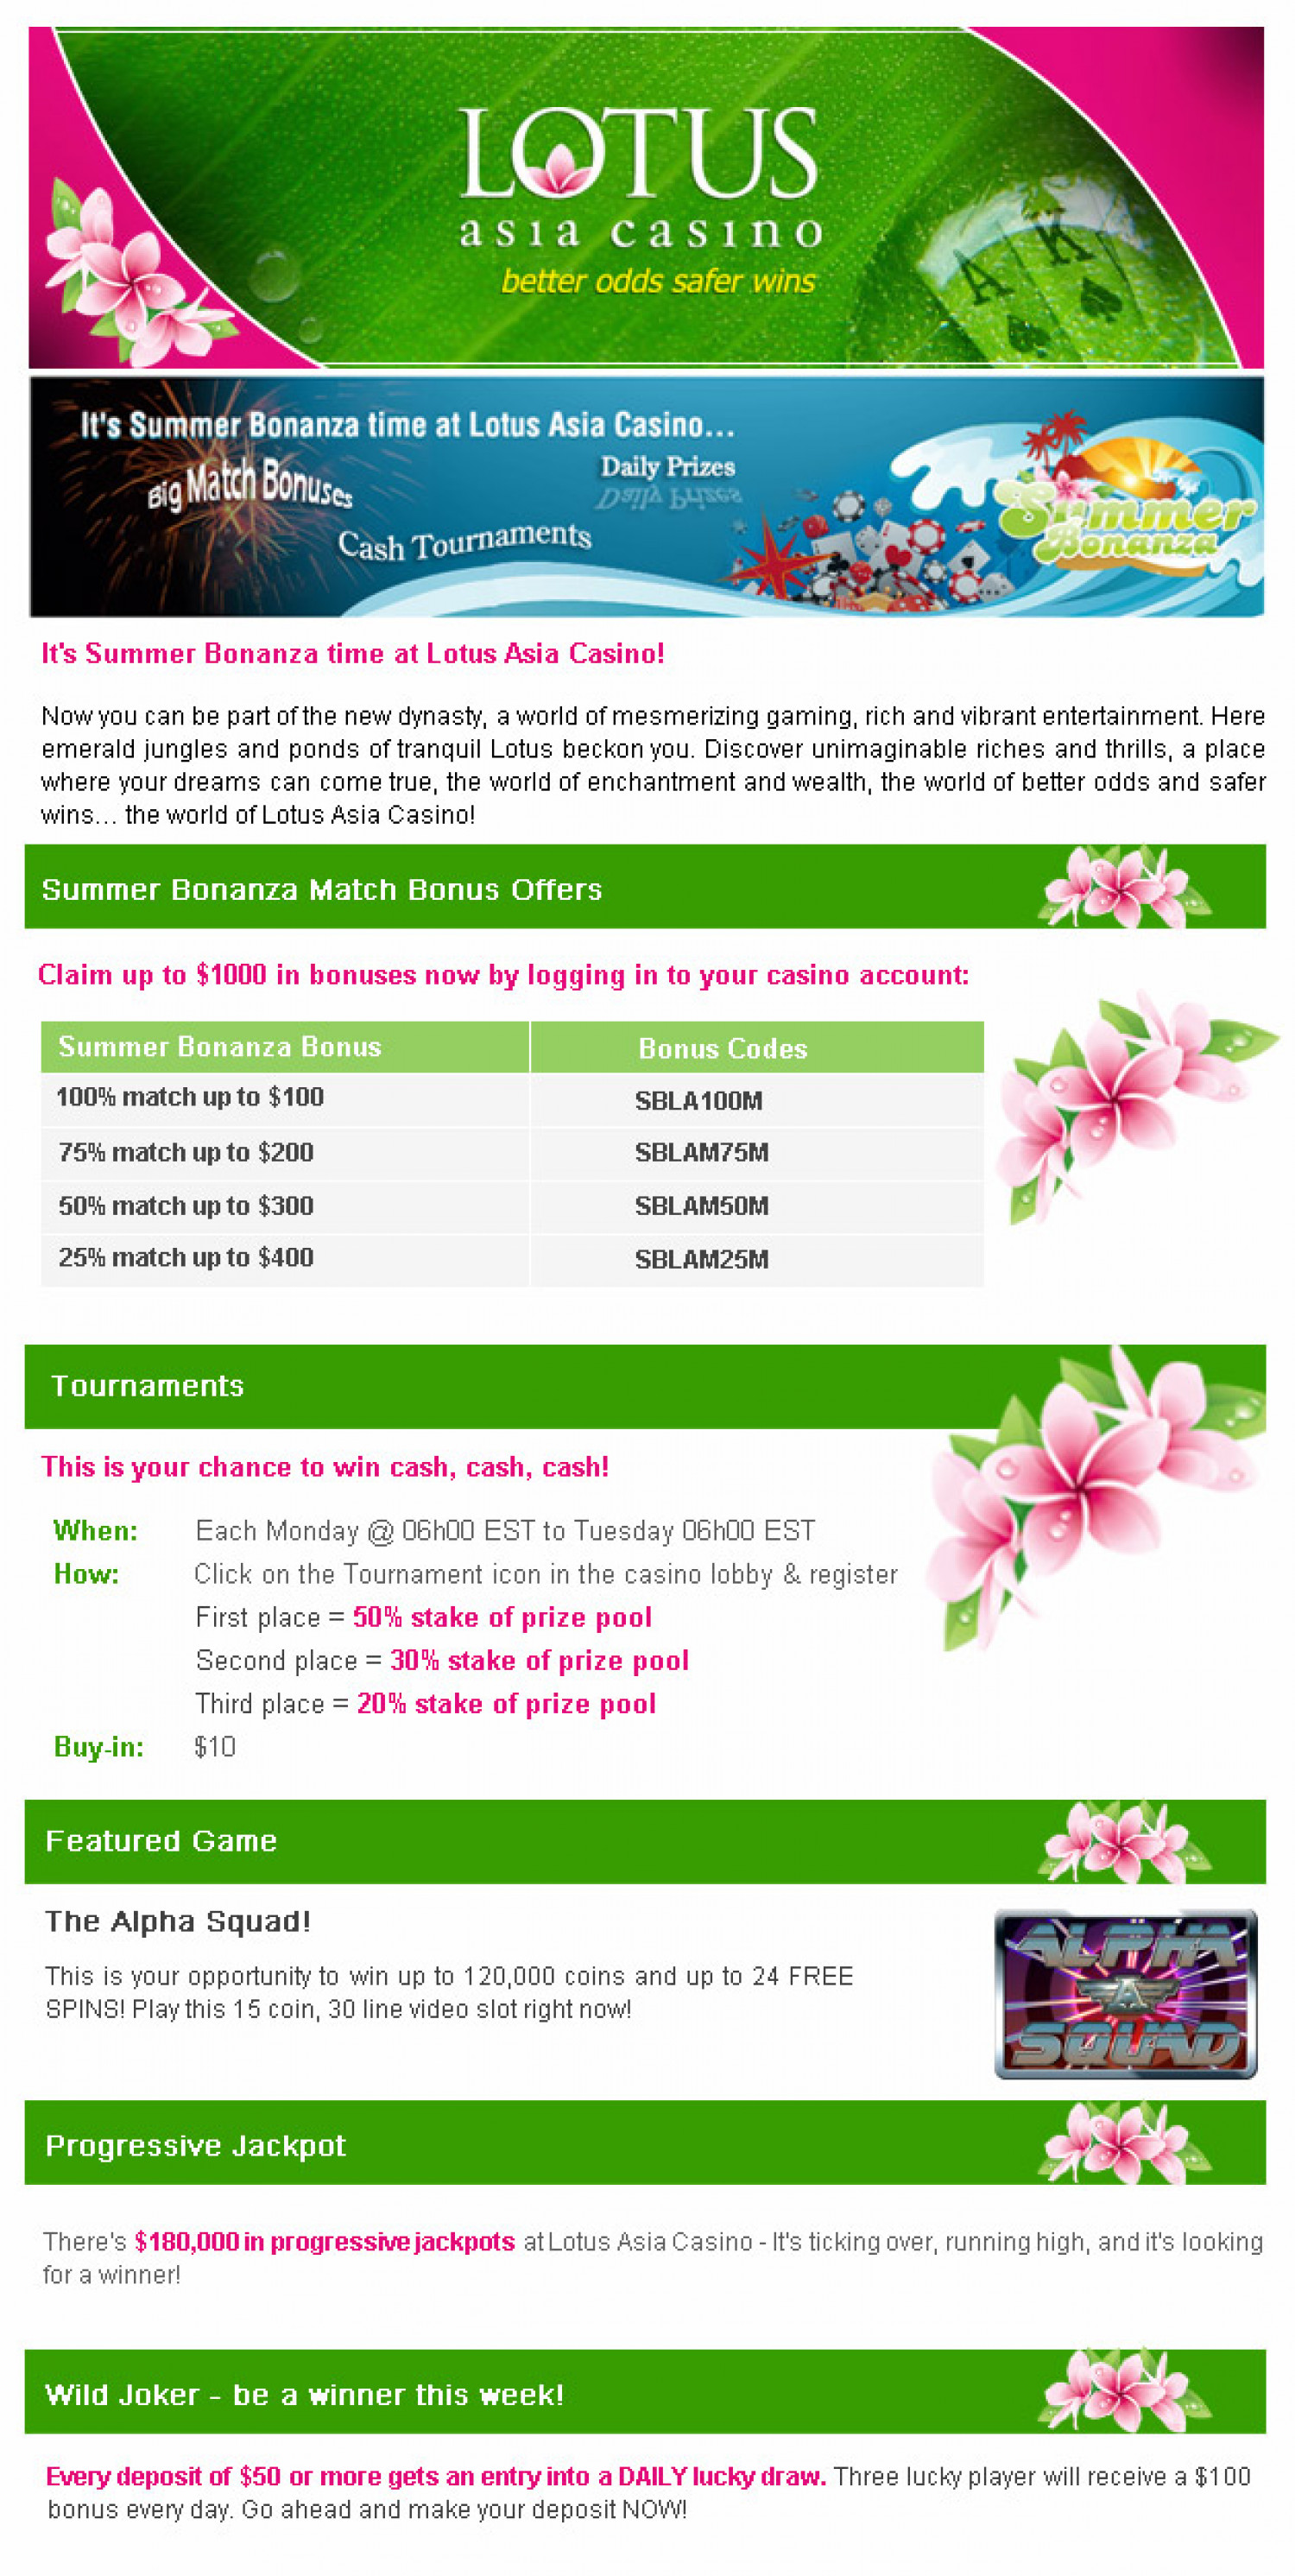 Lotus Asia Casino Summer Bonanza Infographic